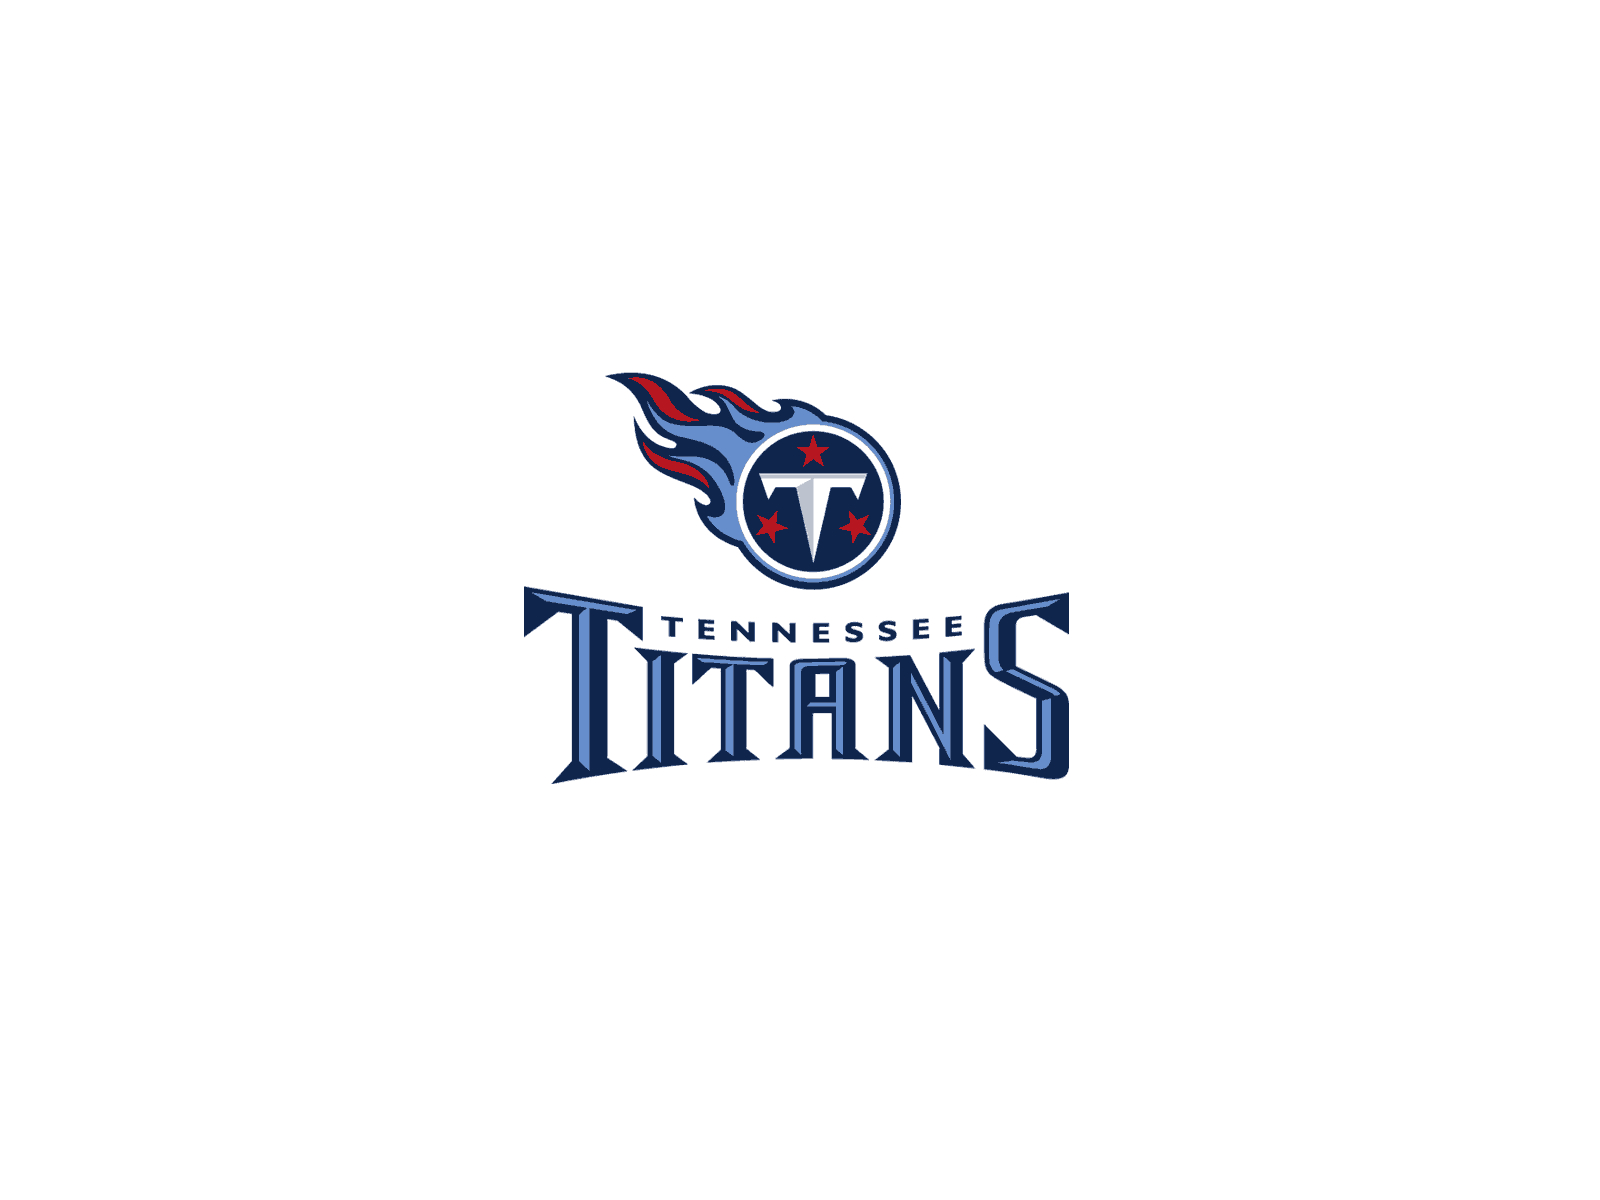 TENNESSEE TITANS Nfl Football Fl Wallpaper